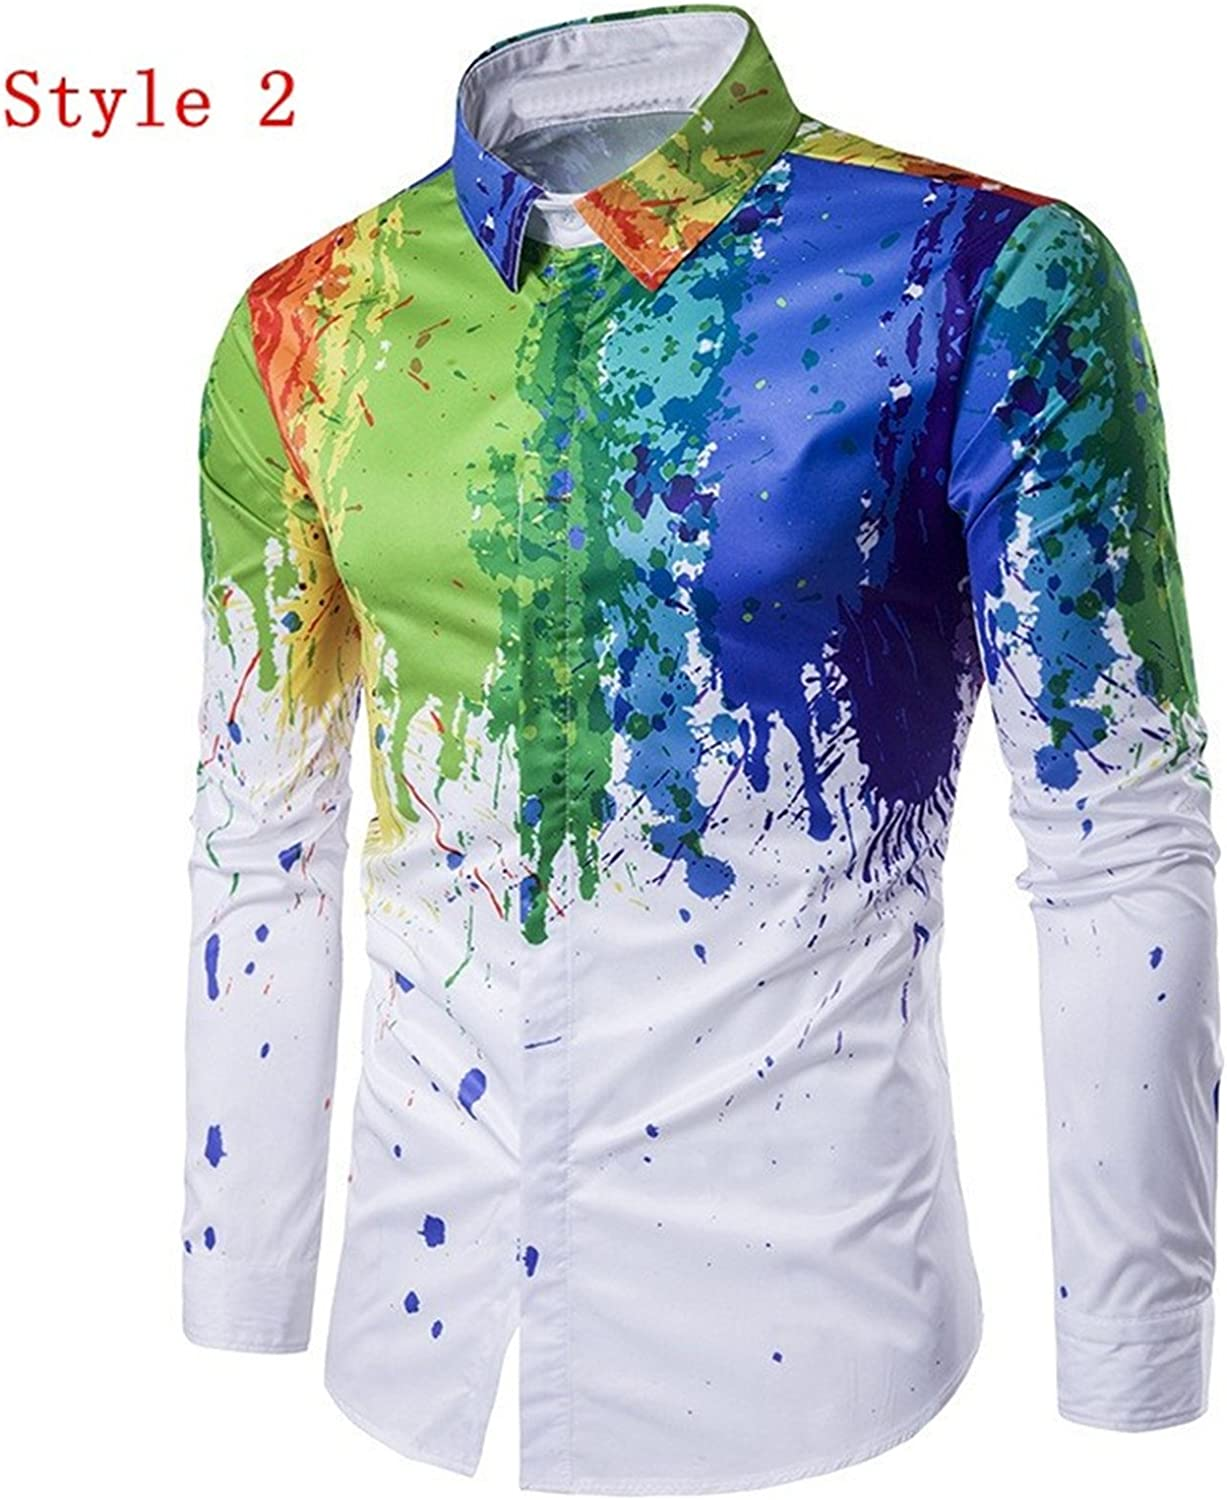 Sonjer New Chic Mens Fashion Shirt 3D Ink Splash Paint Colorful Leisure Street Party Wear Long Sleeve Lapel Floral Printed Shirts 3XL Style 2 L